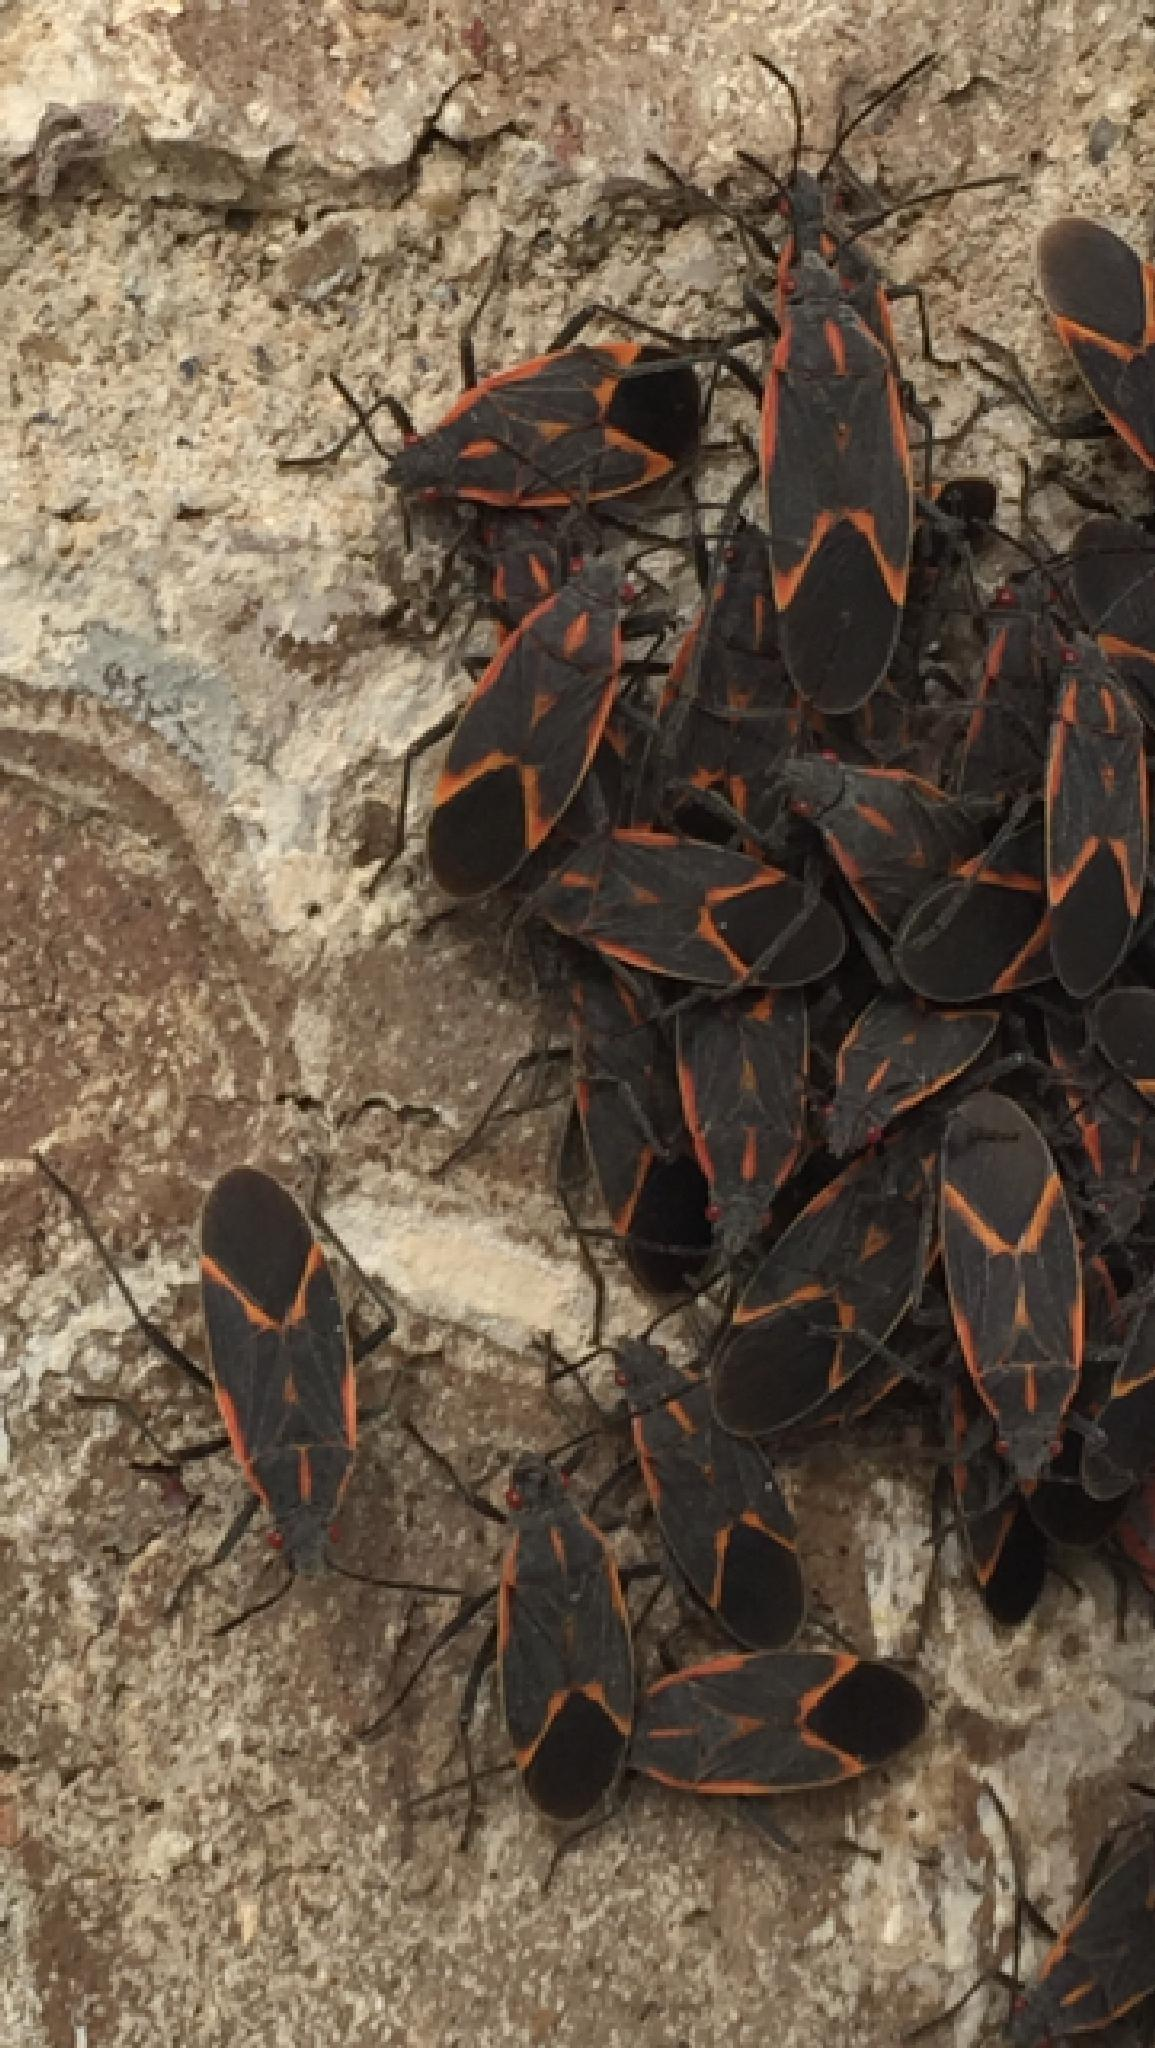 Box Elder Bug Swarm by shaunarwhitaker